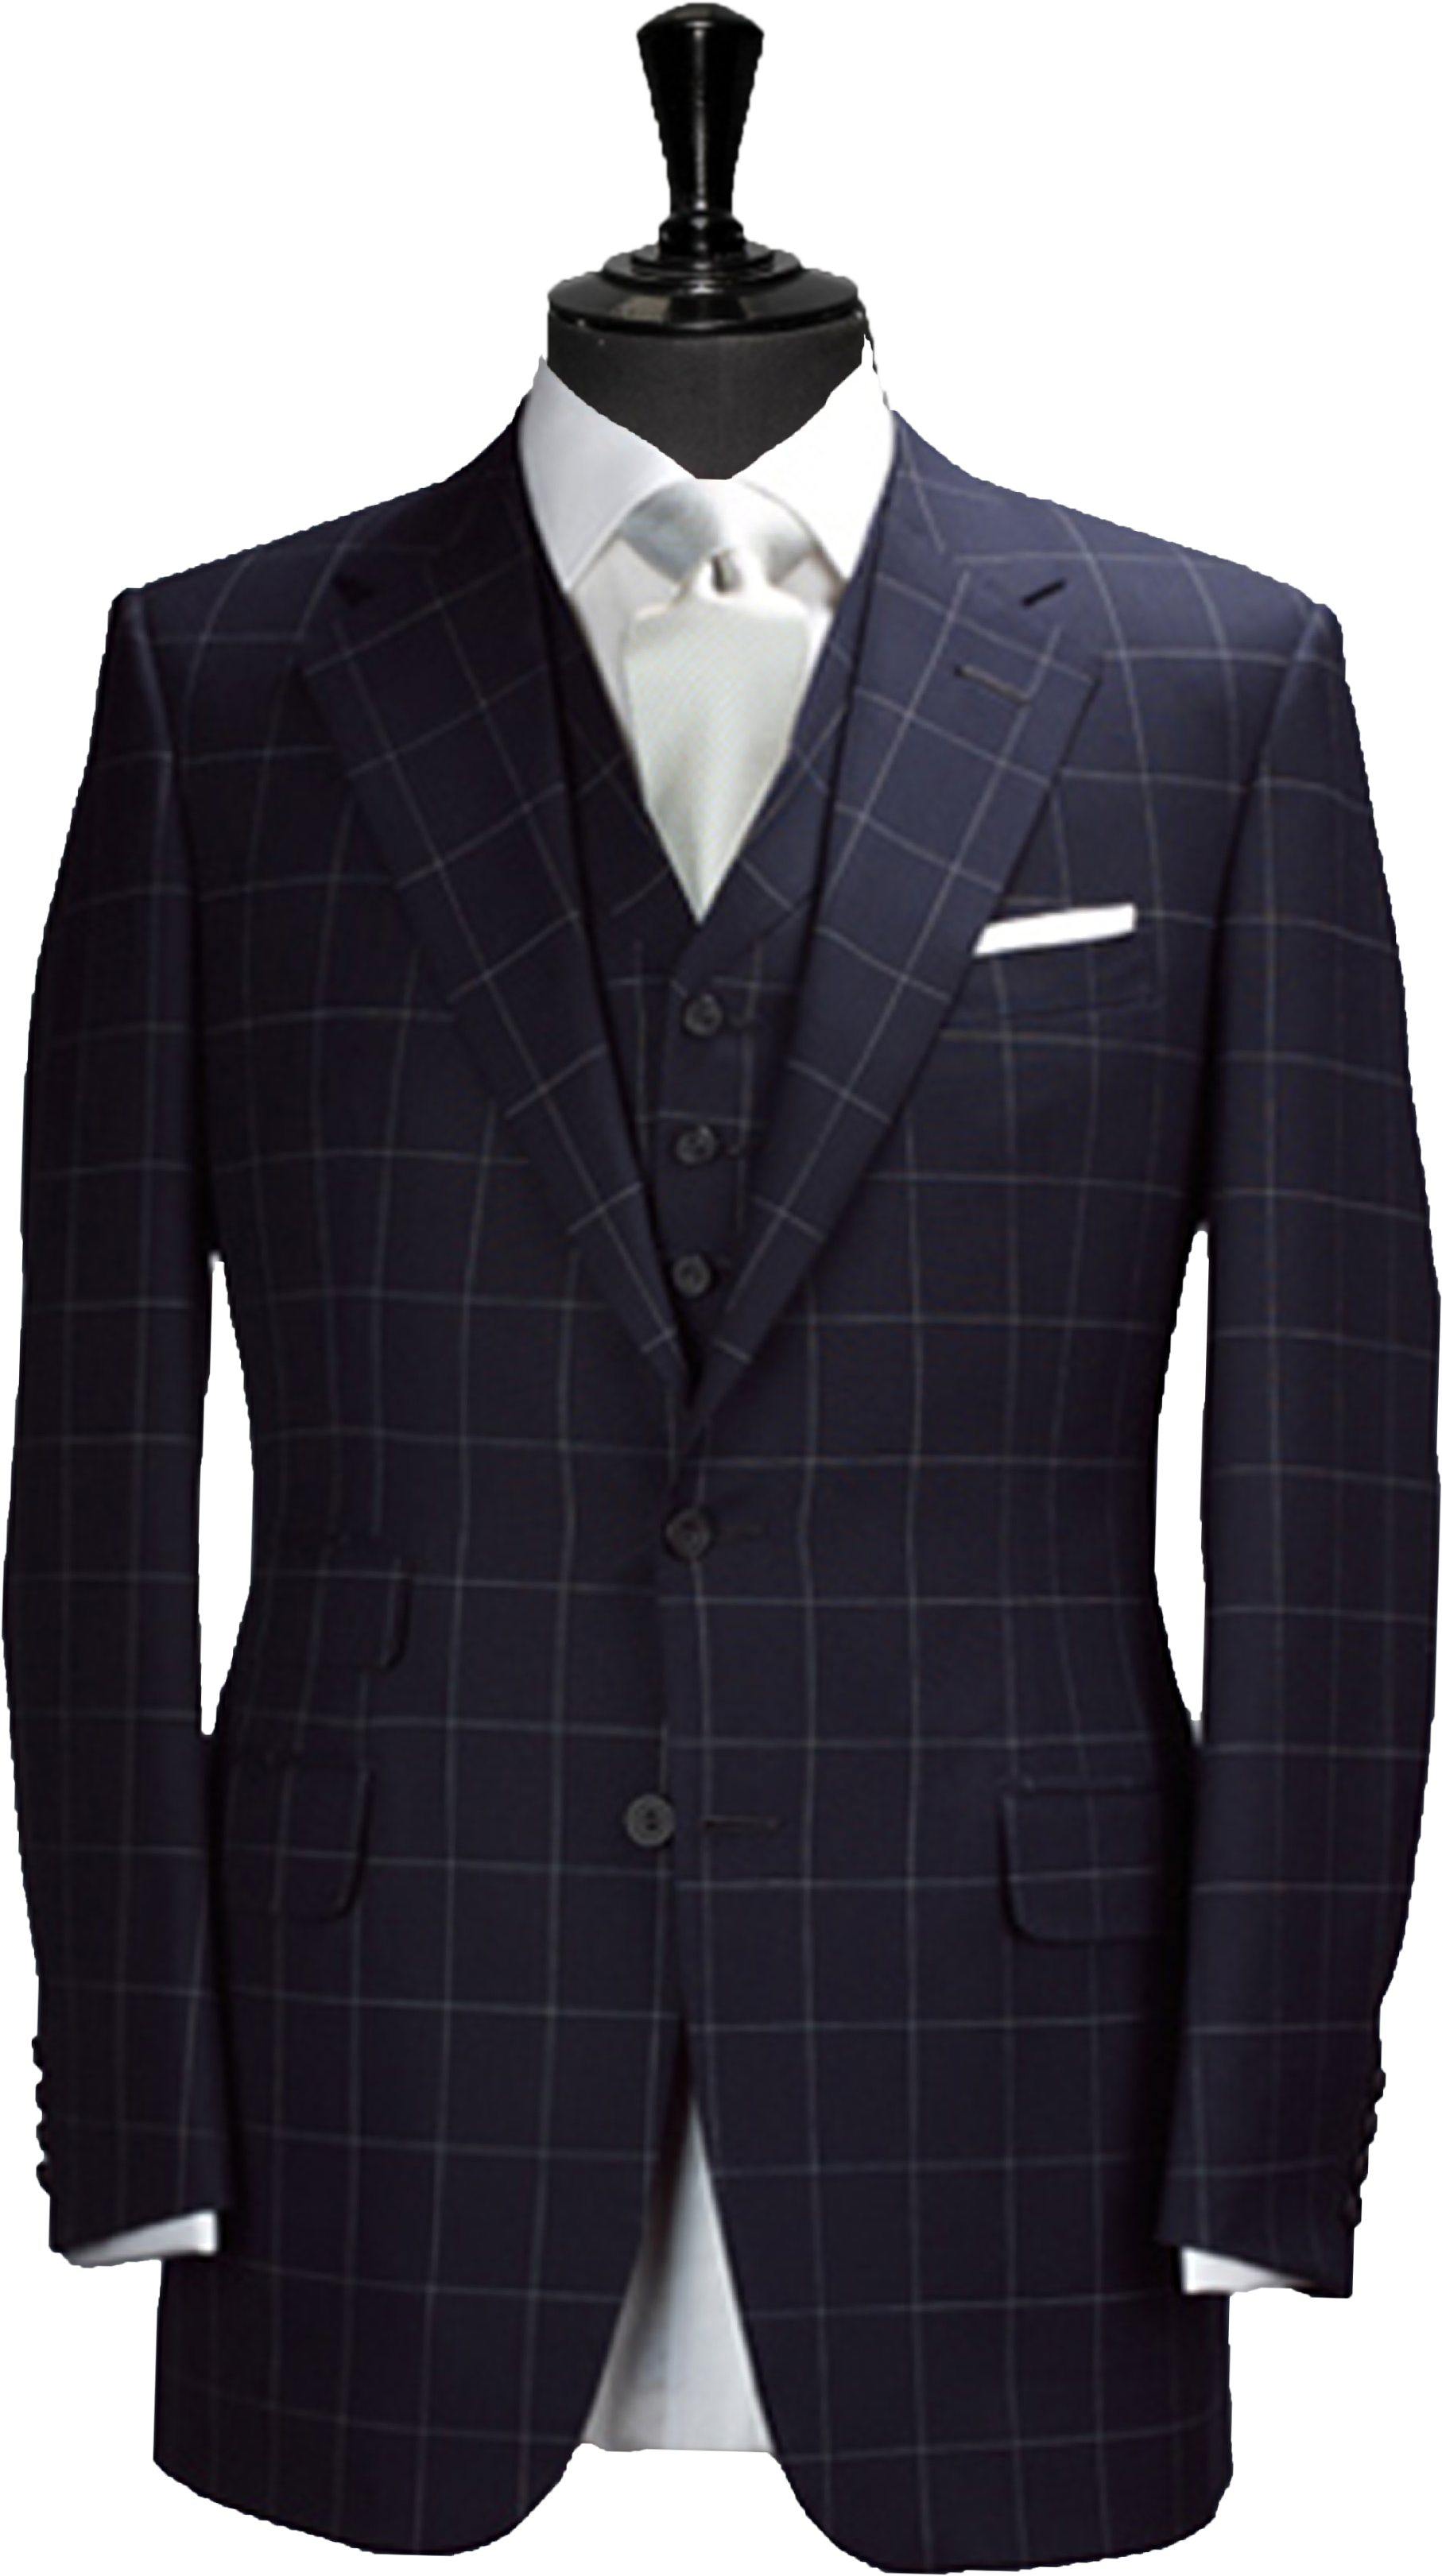 Custom Suits | Bespoke Suits | Fitted Suits in New York | Men ...